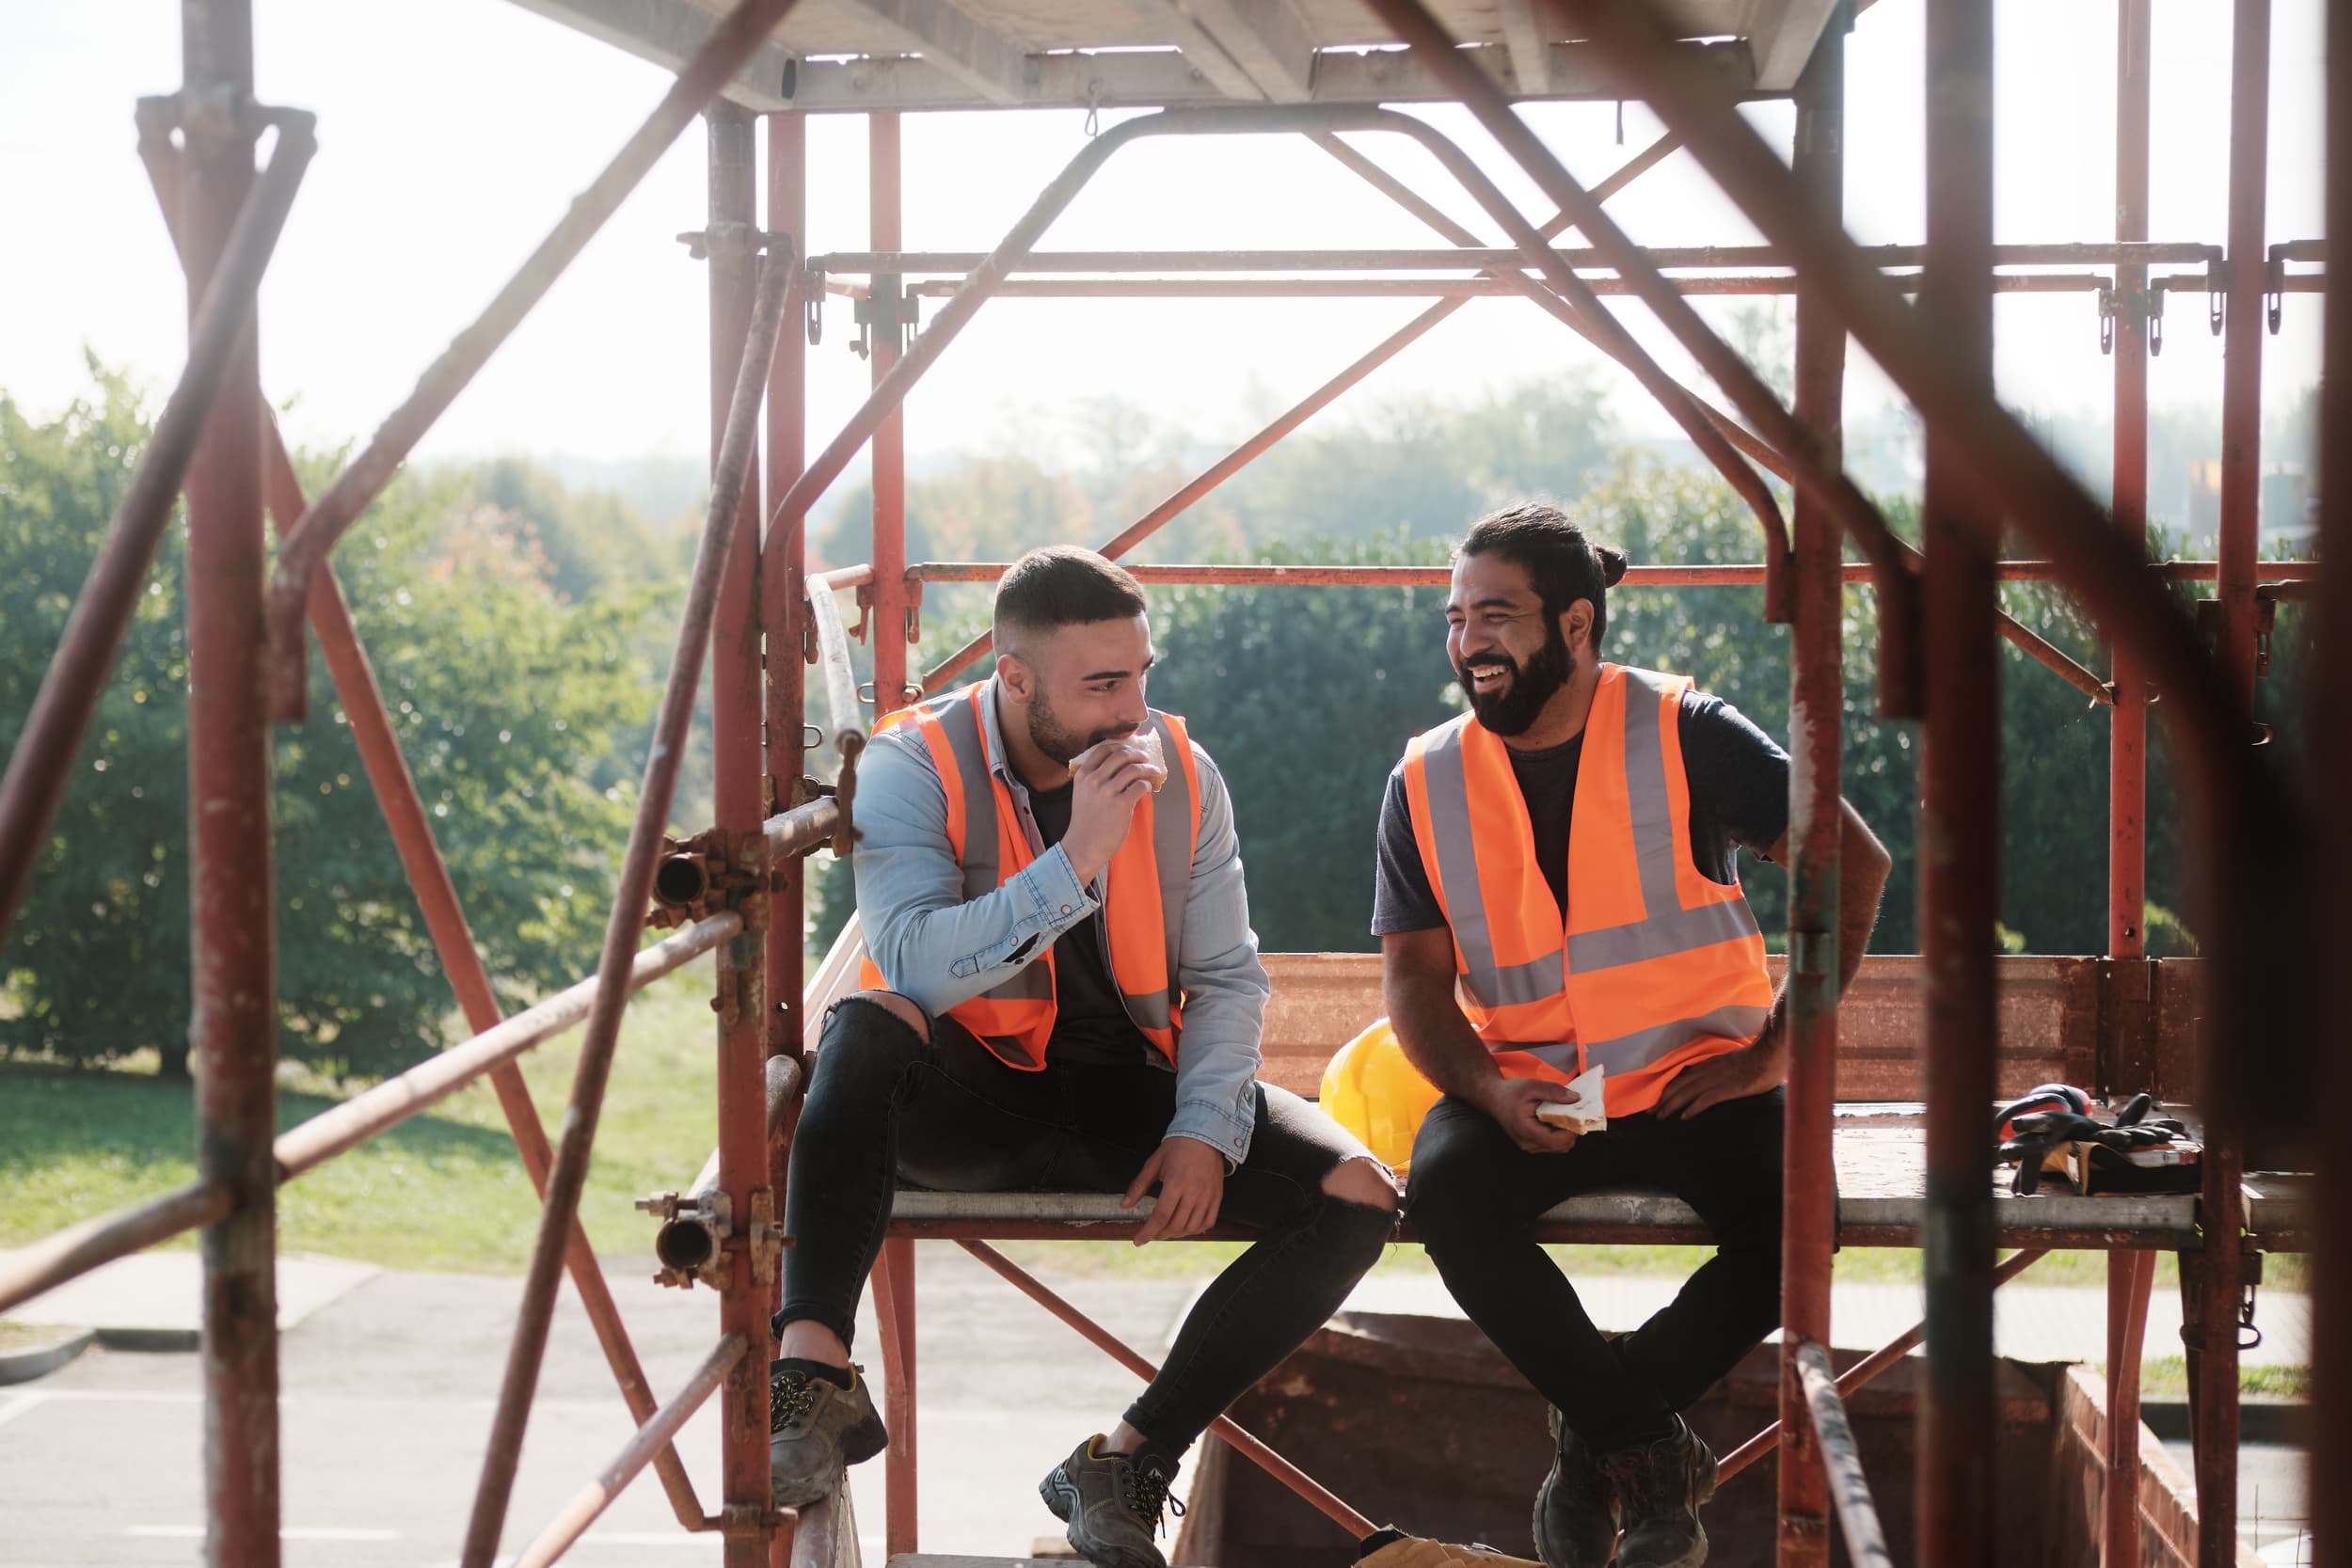 Compliance Training Online Construction Scaffolding Safety course